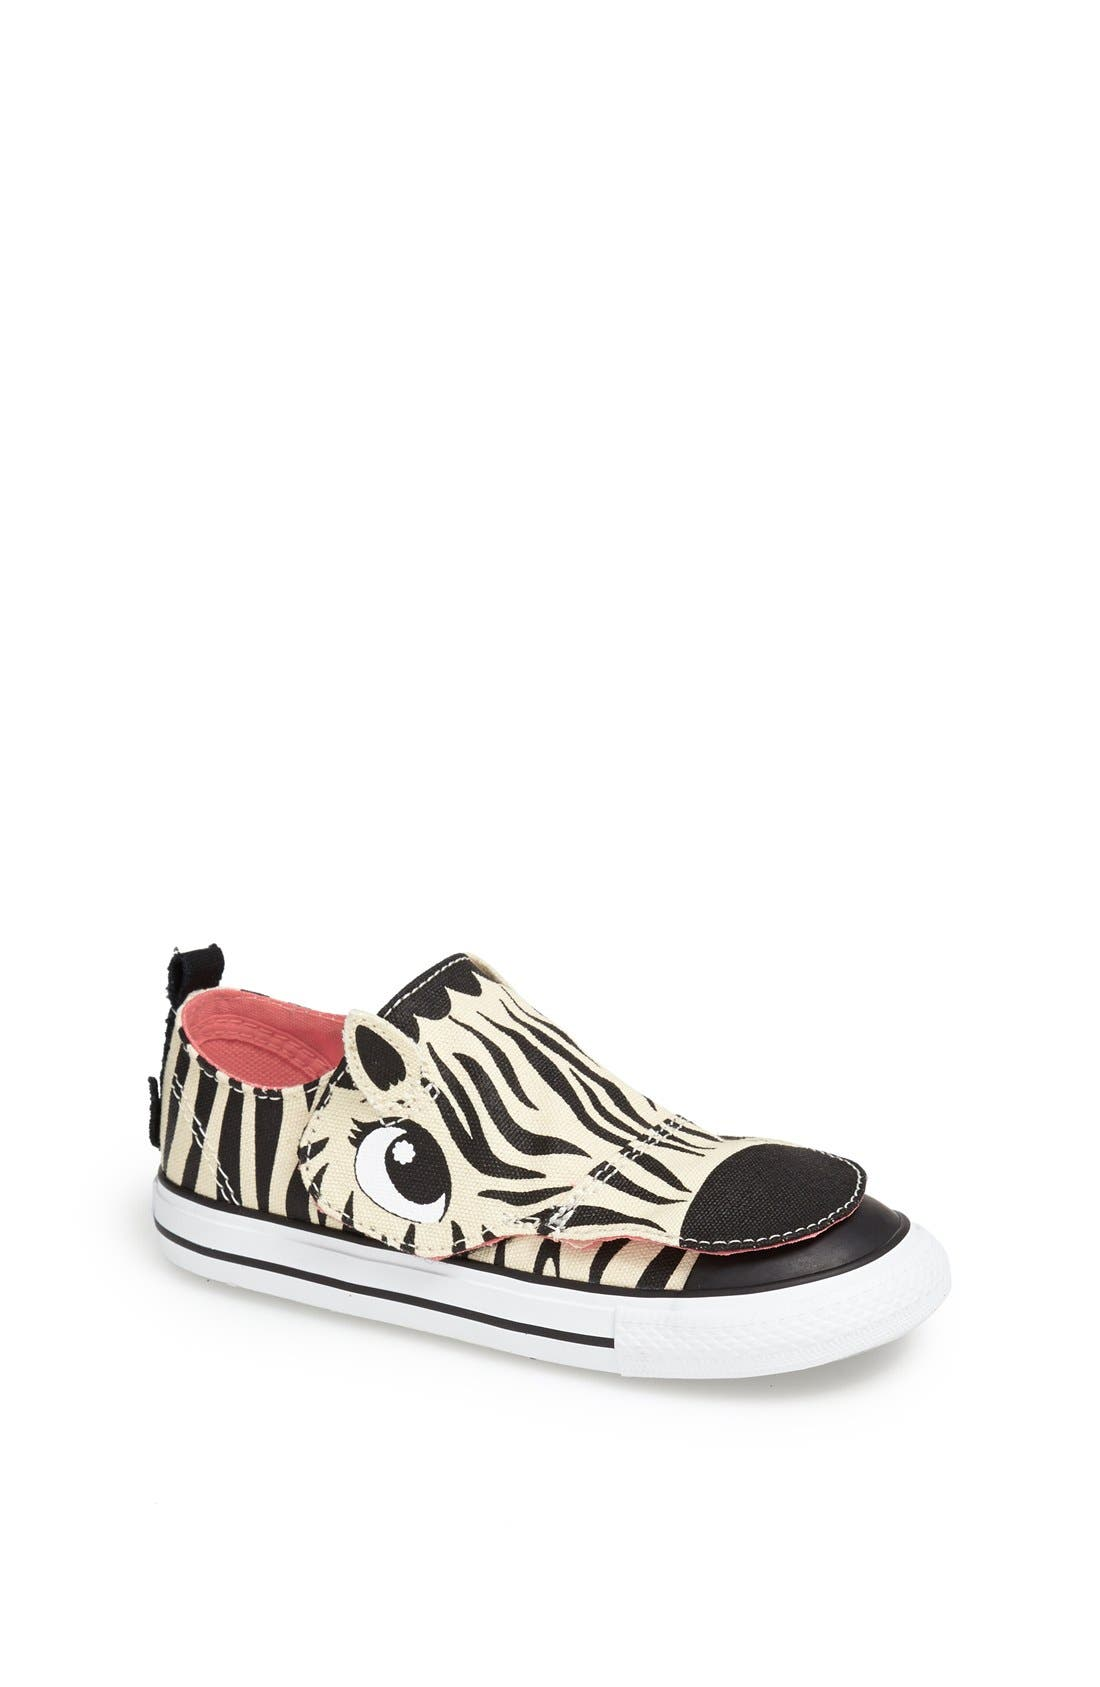 Alternate Image 1 Selected - Converse 'No Problem' Zebra Face Sneaker (Baby, Walker & Toddler)